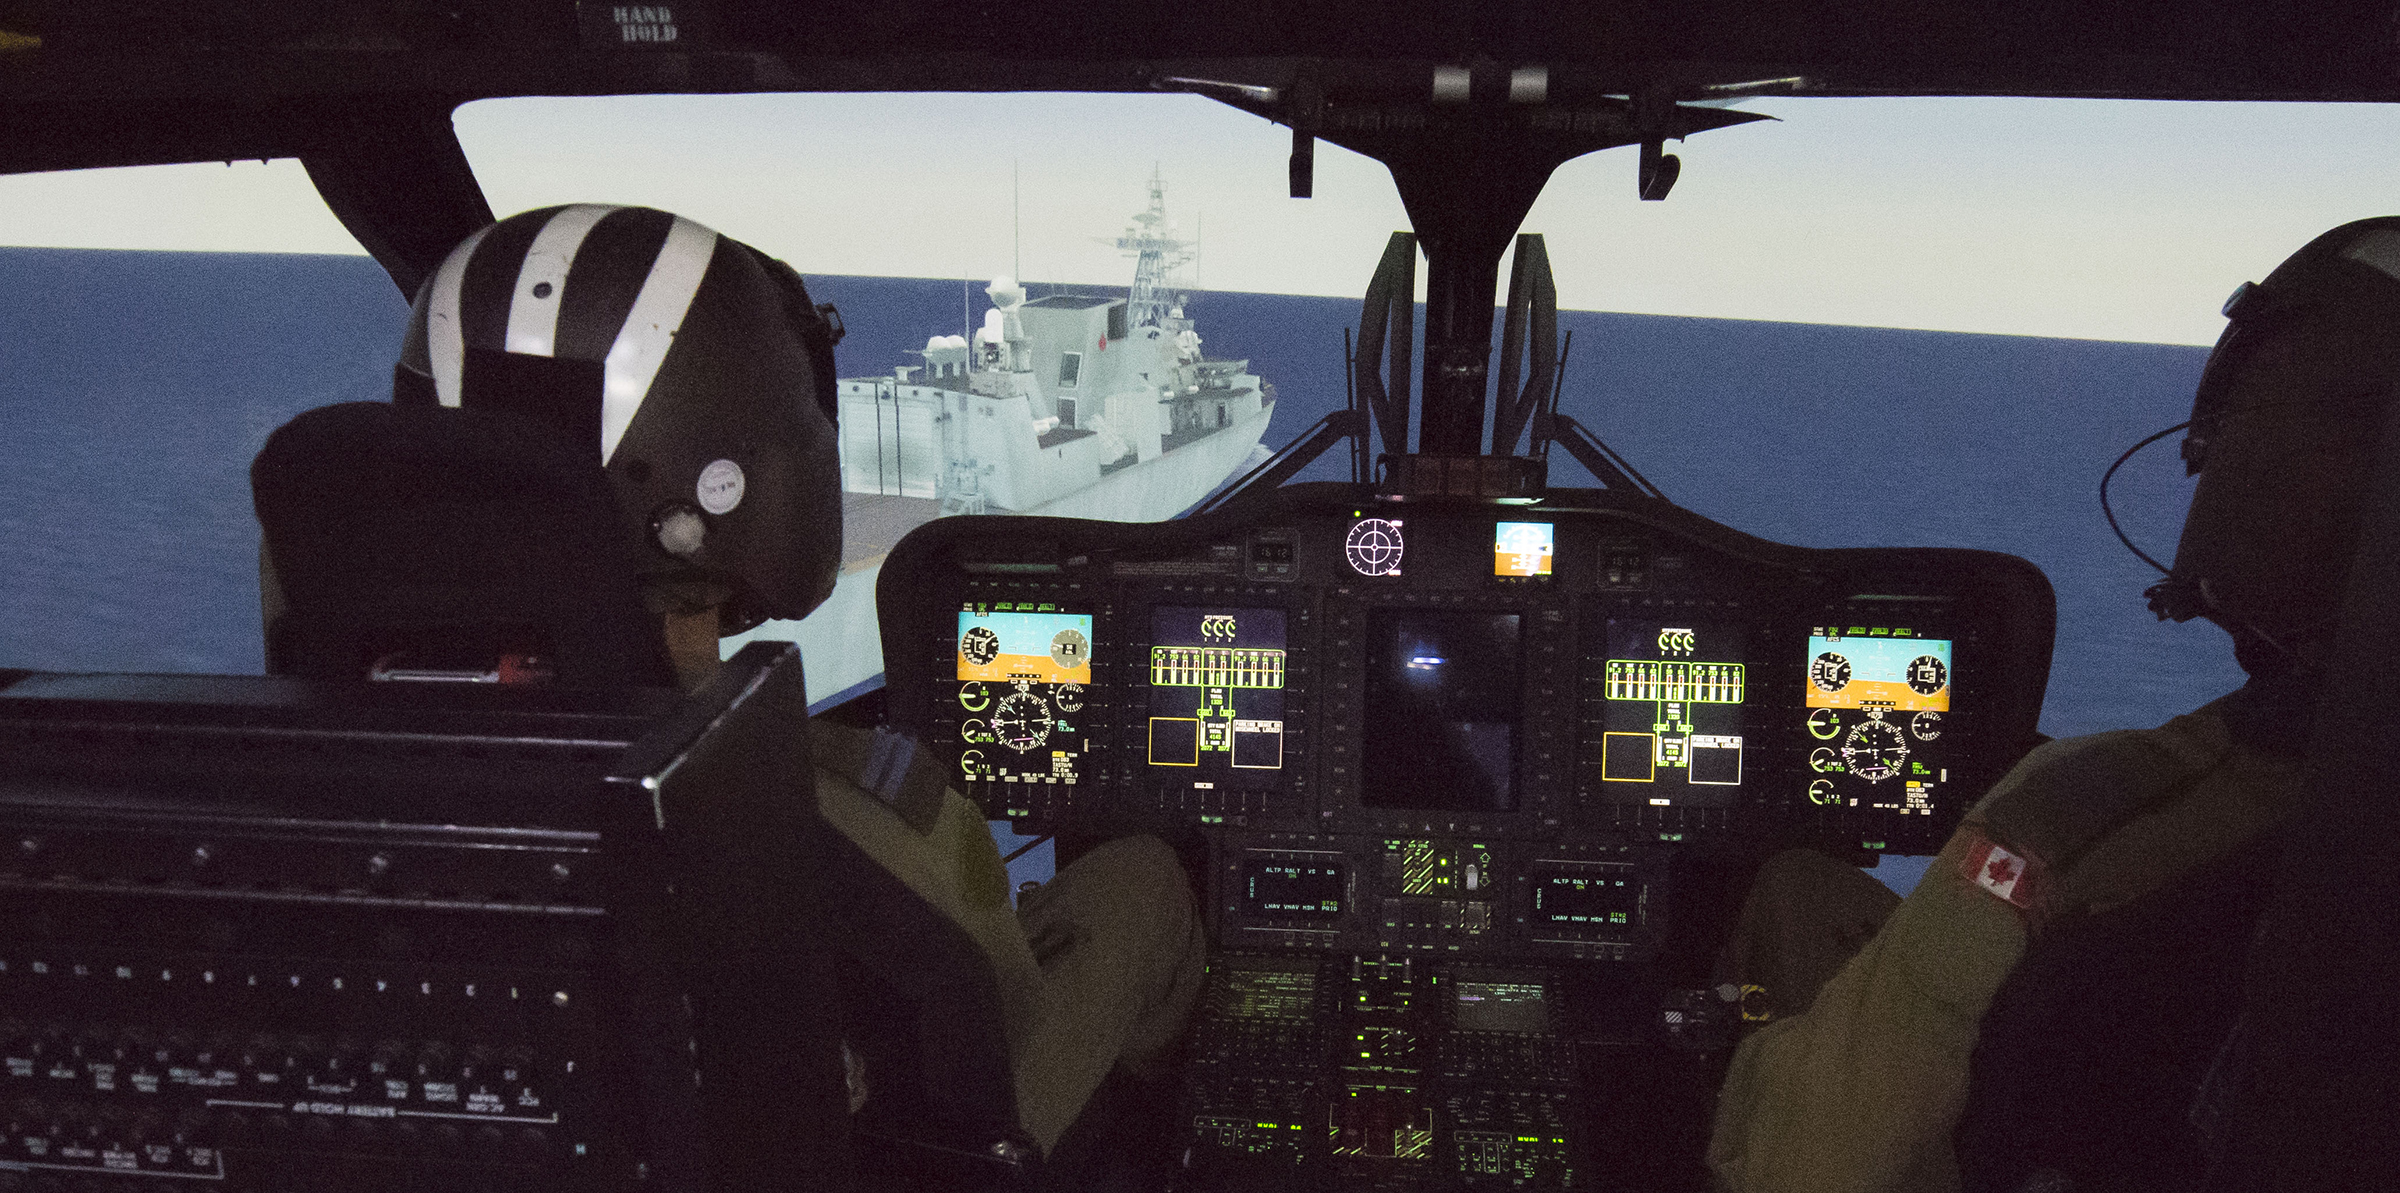 Captain Jean Martin and Captain Craig Law conduct training in the CH-148 Cyclone operational mission simulator on September 15, 2017. PHOTO: Leading Seaman Brad Upshall, SW06-2017-0284-008